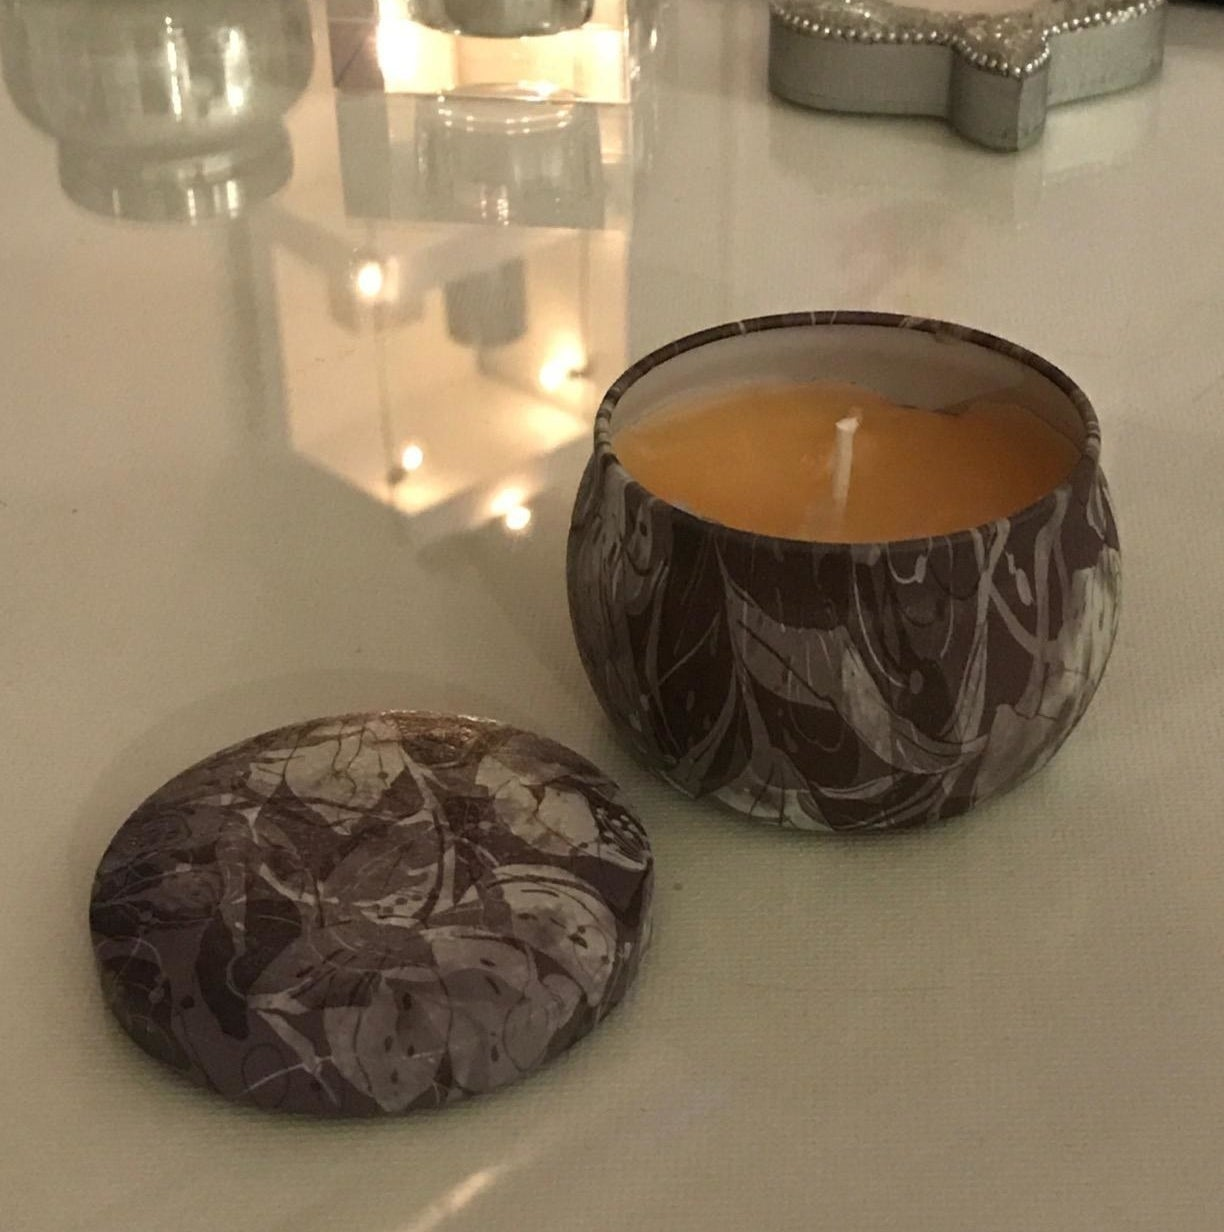 Reviewer photo of the candle tin with a candle inside